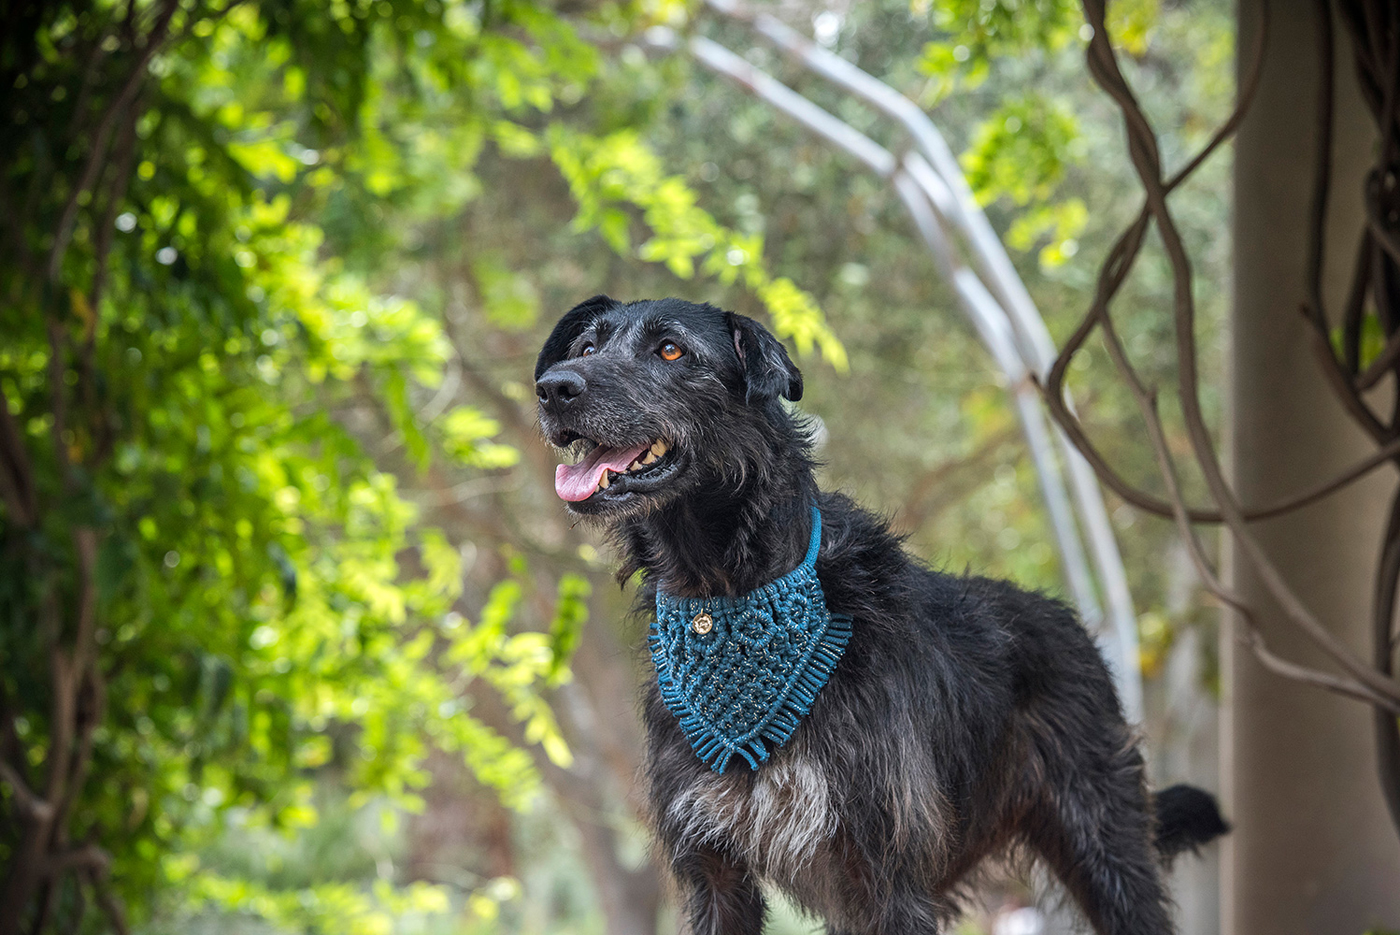 One of Erin's canine models looking smart in a Boho Pet teal macramé decorative collar